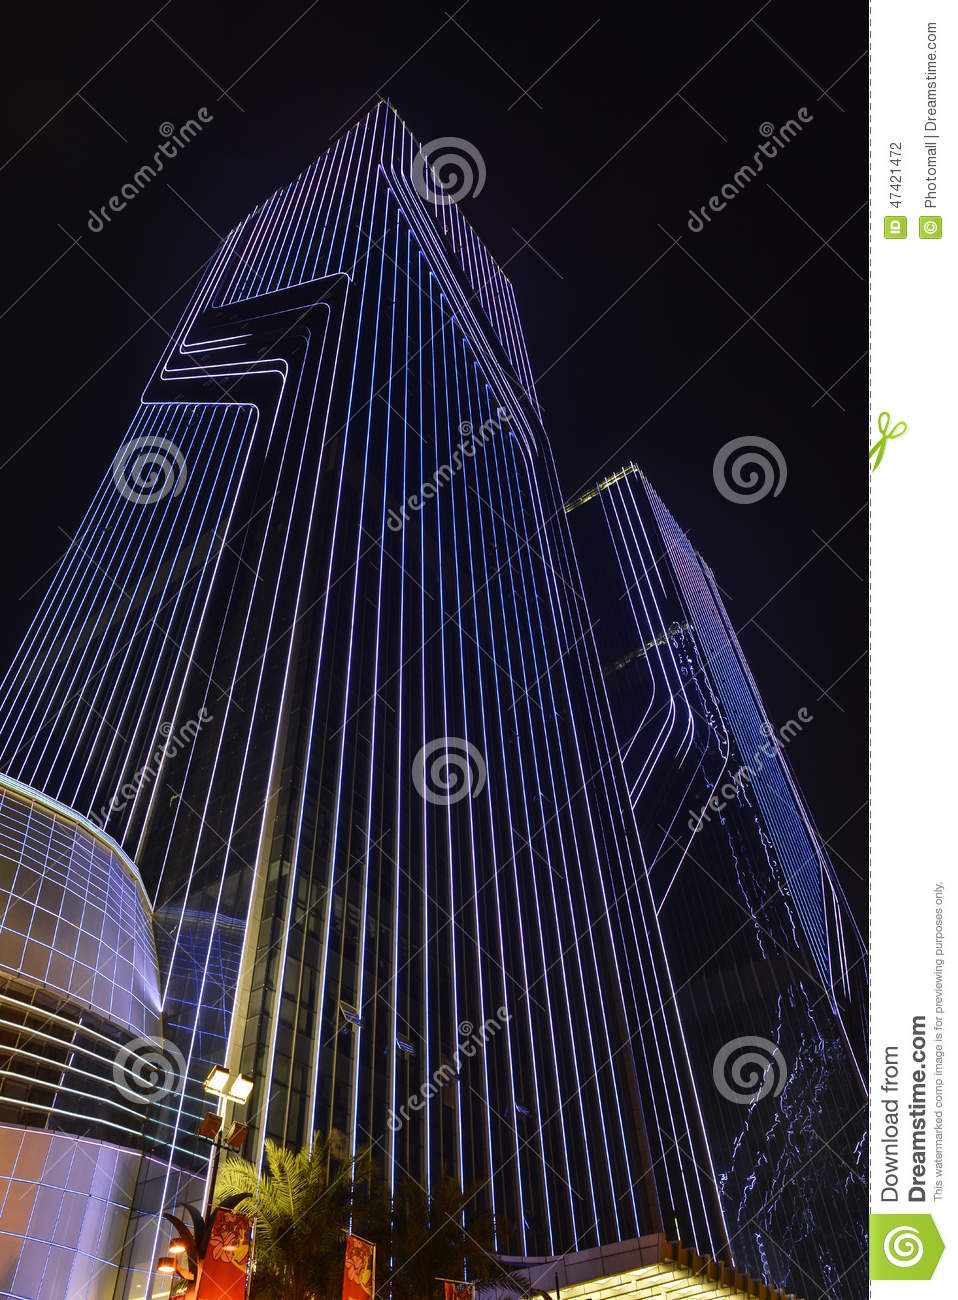 Led Curtain Wall,night Lighting Of Commercial Building